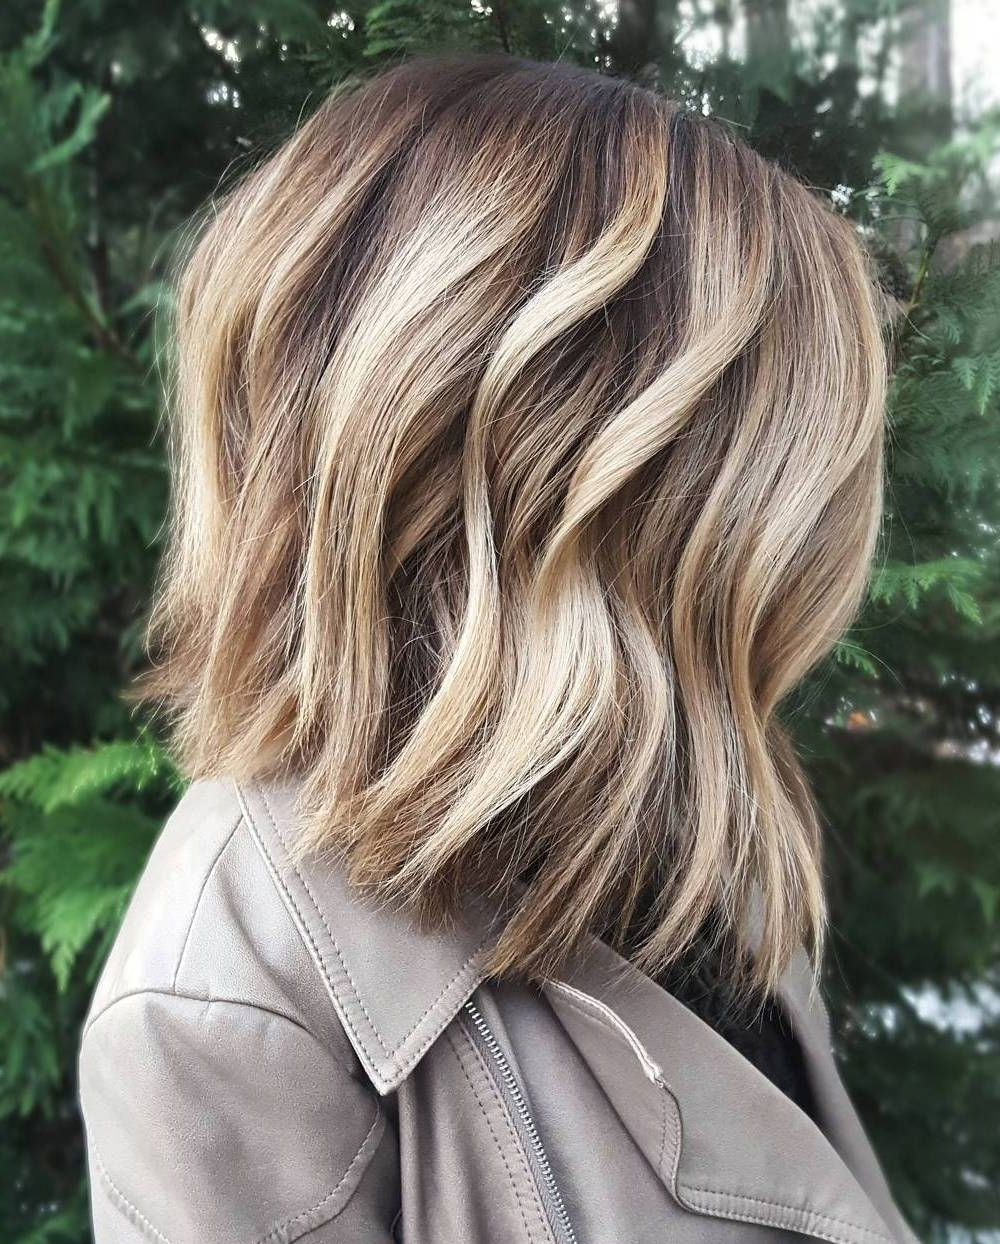 Latest Subtle Dirty Blonde Angled Bob Hairstyles Within 20 Dirty Blonde Hair Ideas That Work On Everyone (View 10 of 20)